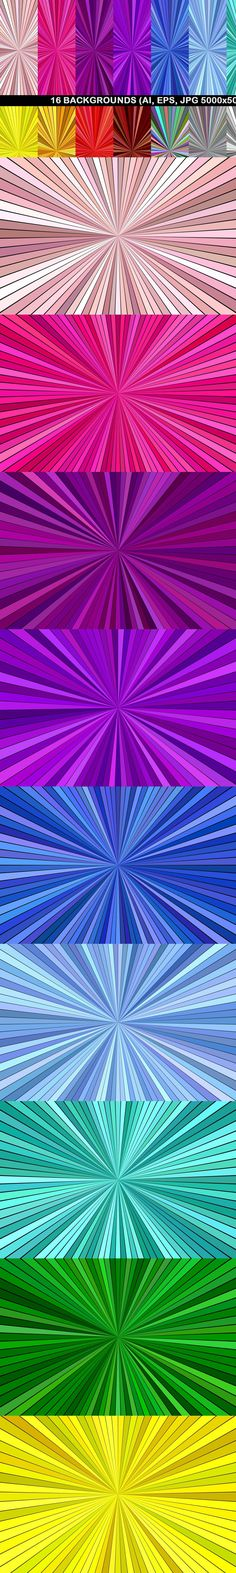 16 Burst Backgrounds #CheapVectorGraphics #burst #psychedelic #rays #BackgroundSet #BackgroundDesign #BackgroundCollections #background #BackgroundSets #DiscountBackground #abstract #abstractbackground #PremiumVectorGraphics #sunburst #PremiumBackgrounds #abstract #CheapVectorBackgrounds #sale #BackgroundSet